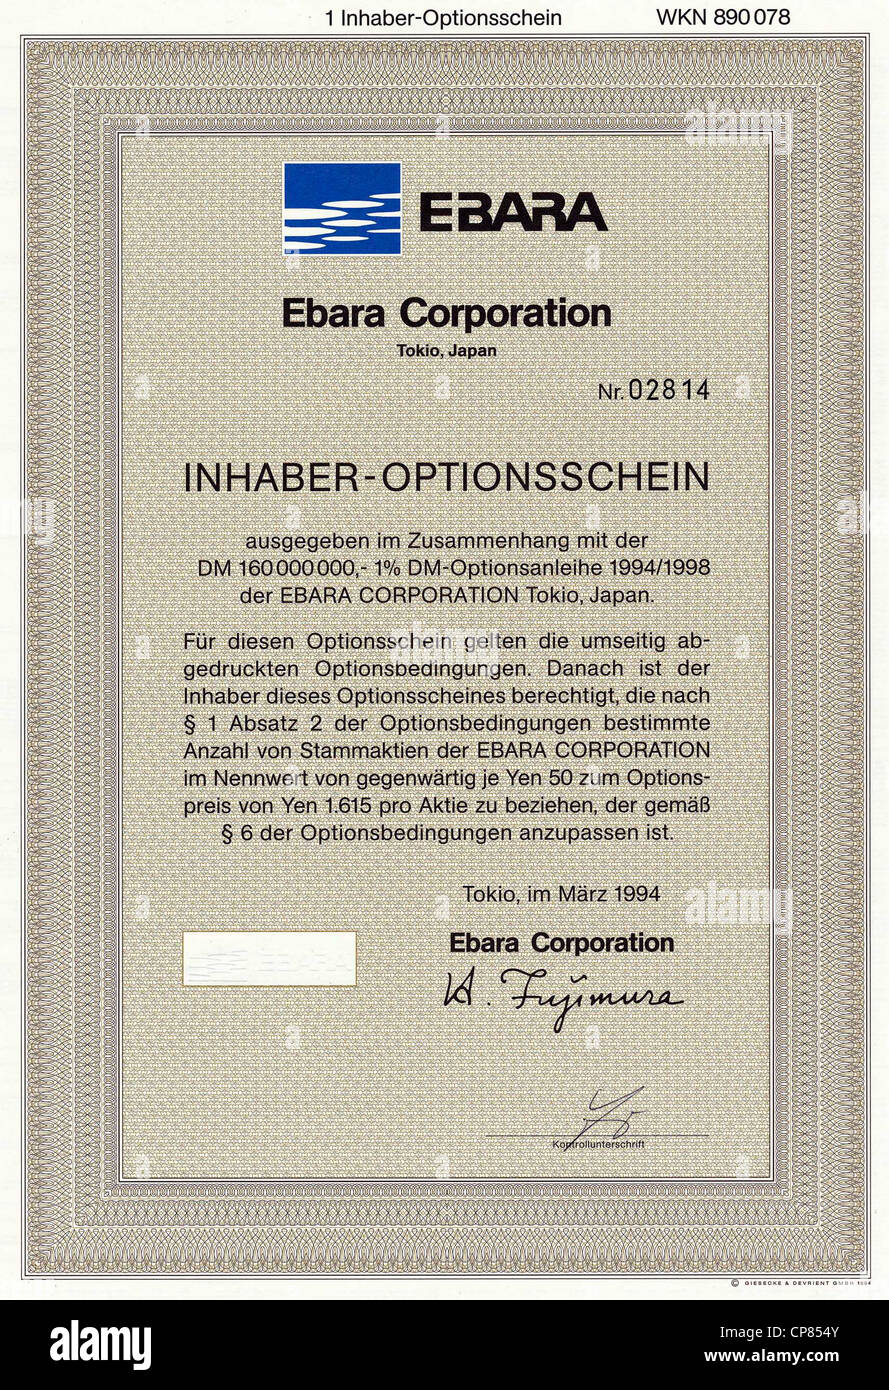 Japanese bearer warrant, German Mark, DM, Ebara Corporation, manufacturer of electrical and electronic pumps, Historisches - Stock Image